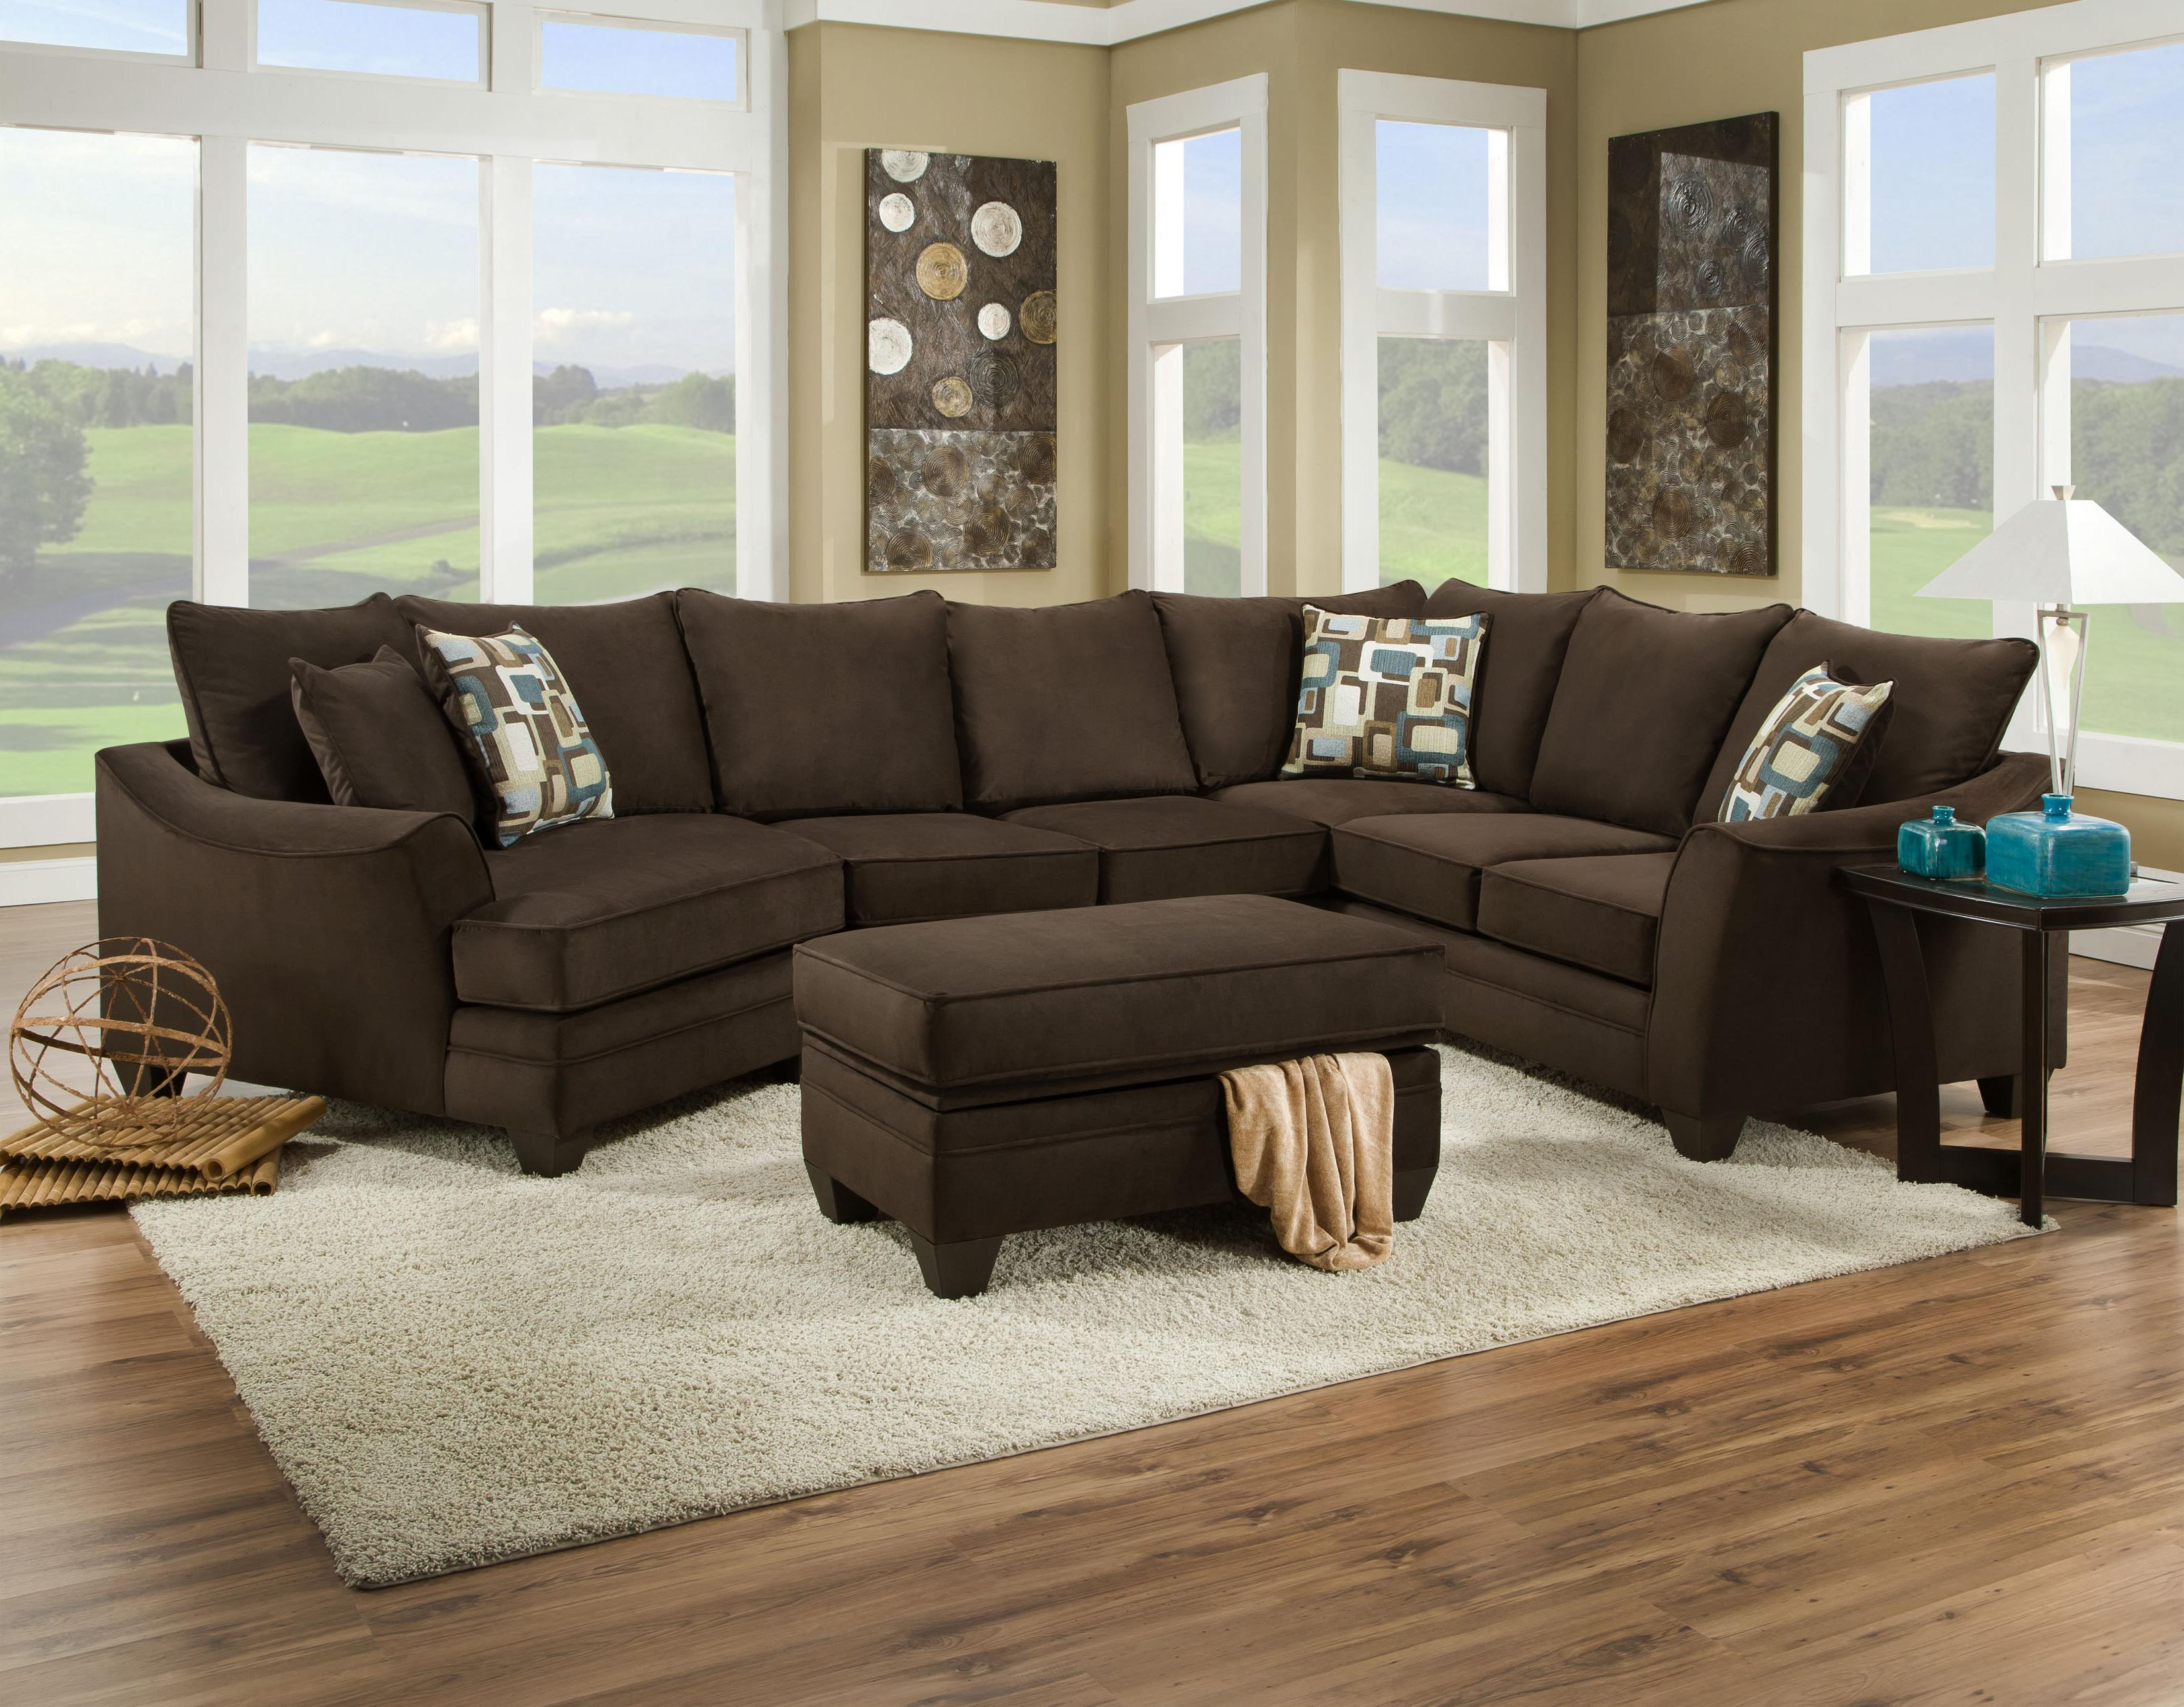 American Furniture 3810 Sectional Sofa That Seats 5 With Left Side Cuddler Miskelly Furniture